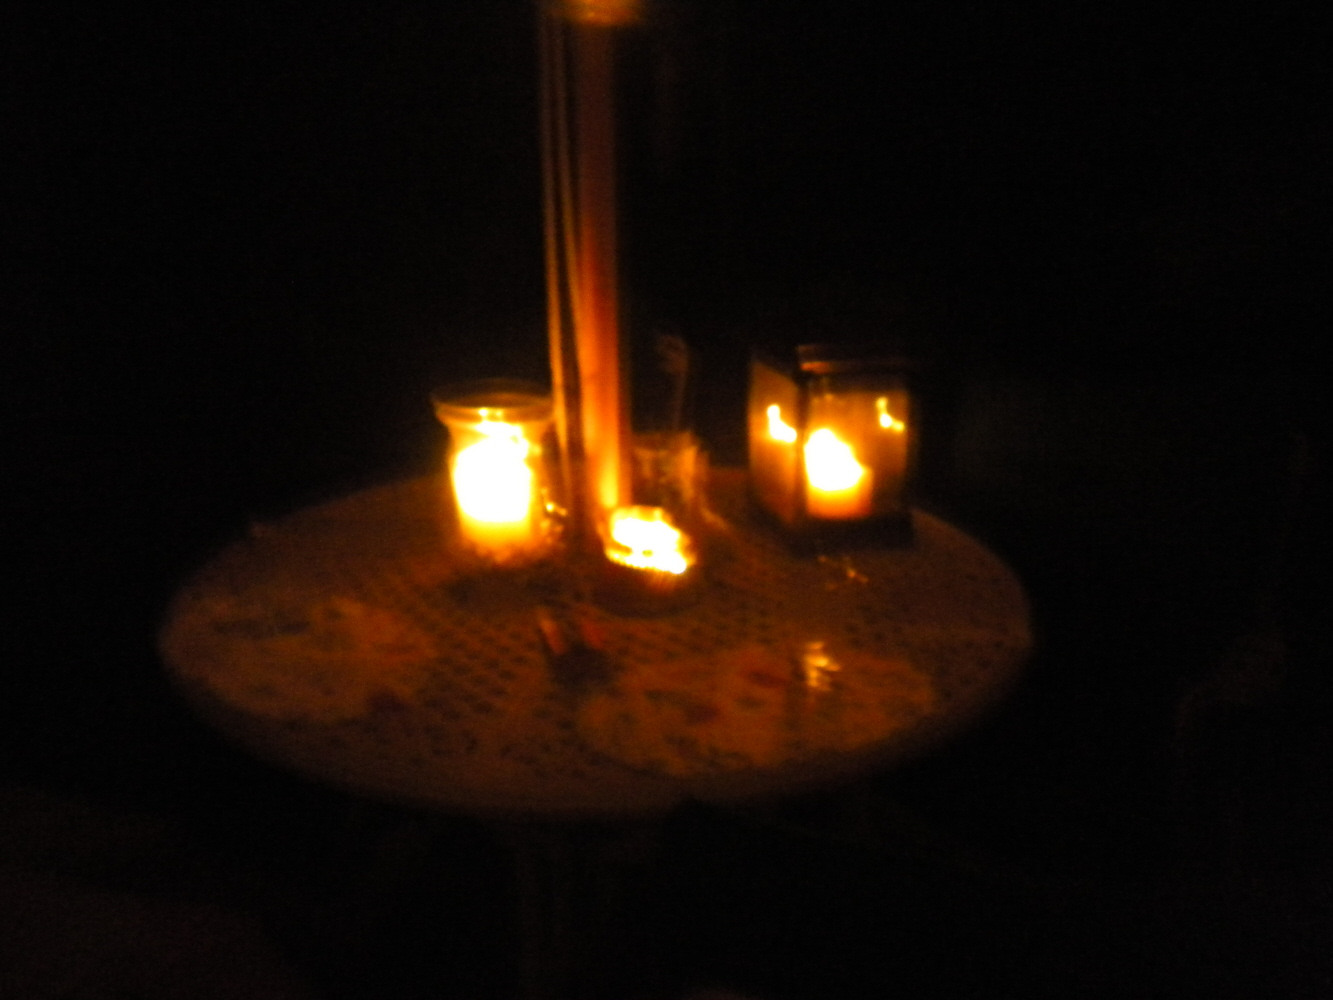 The Moon Was Coming Out Behind The Clouds But My Camera Wonu0027t Take Really  Good Night Pictures So I Donu0027t Have Any Picture Of That. Here Are Some  Candle ...